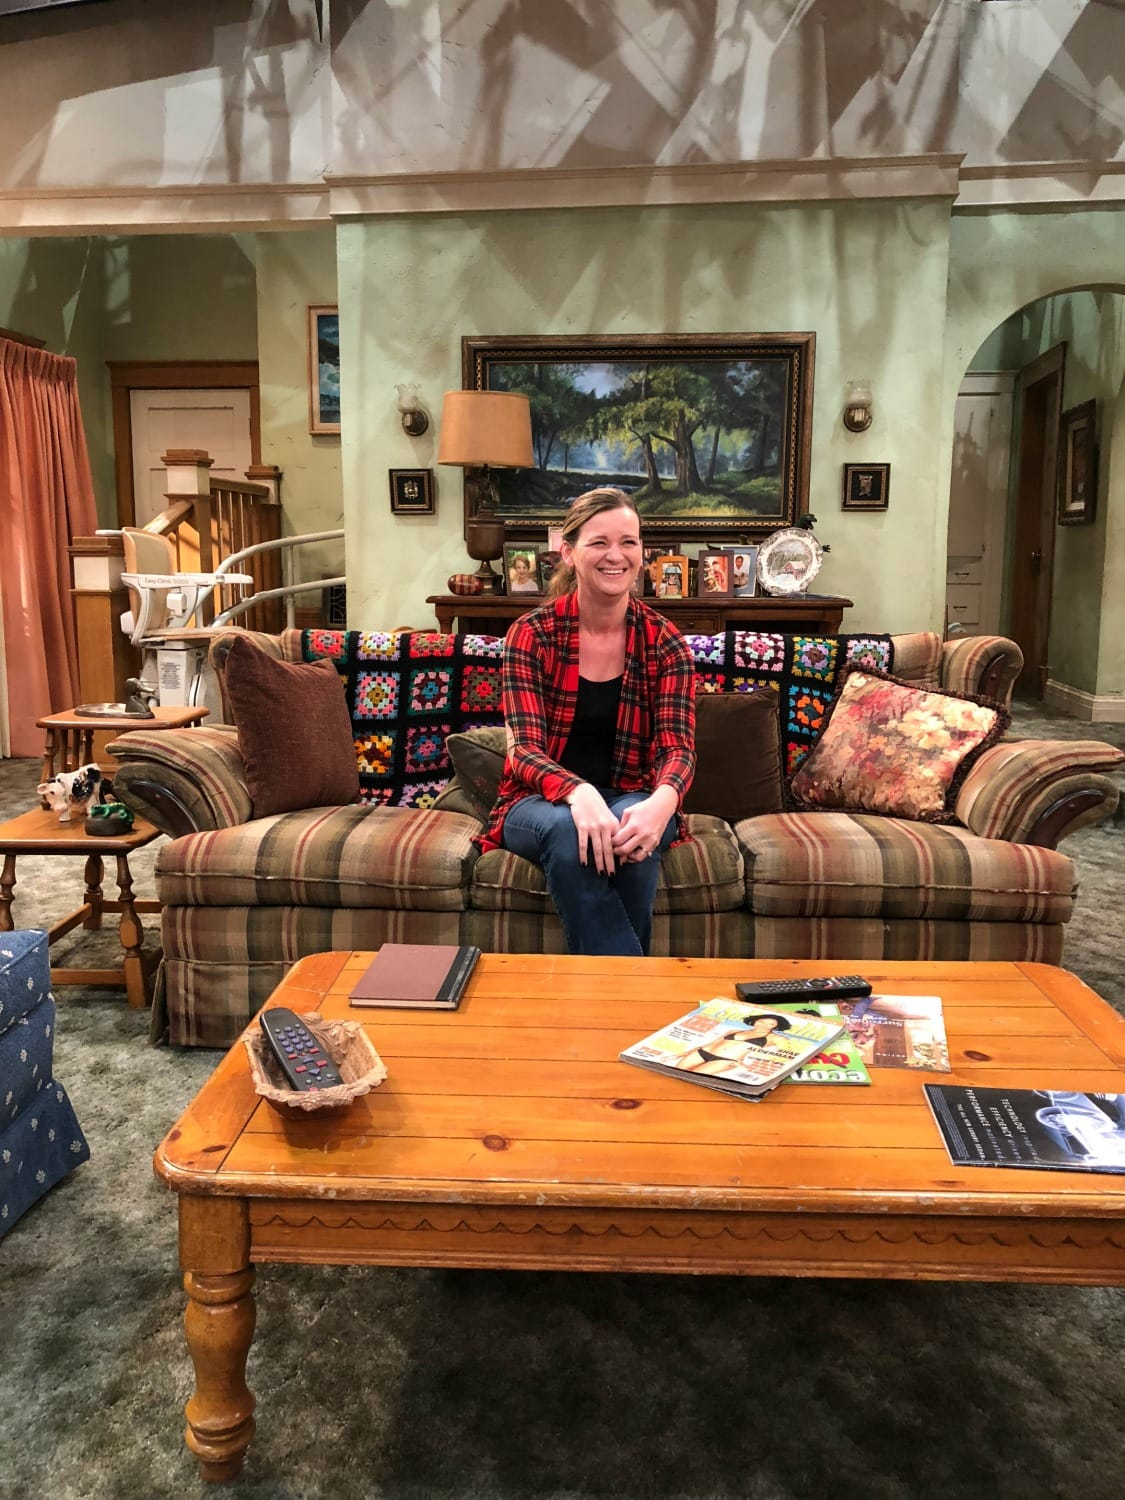 Roseanne Set 2018 Iconic Couch